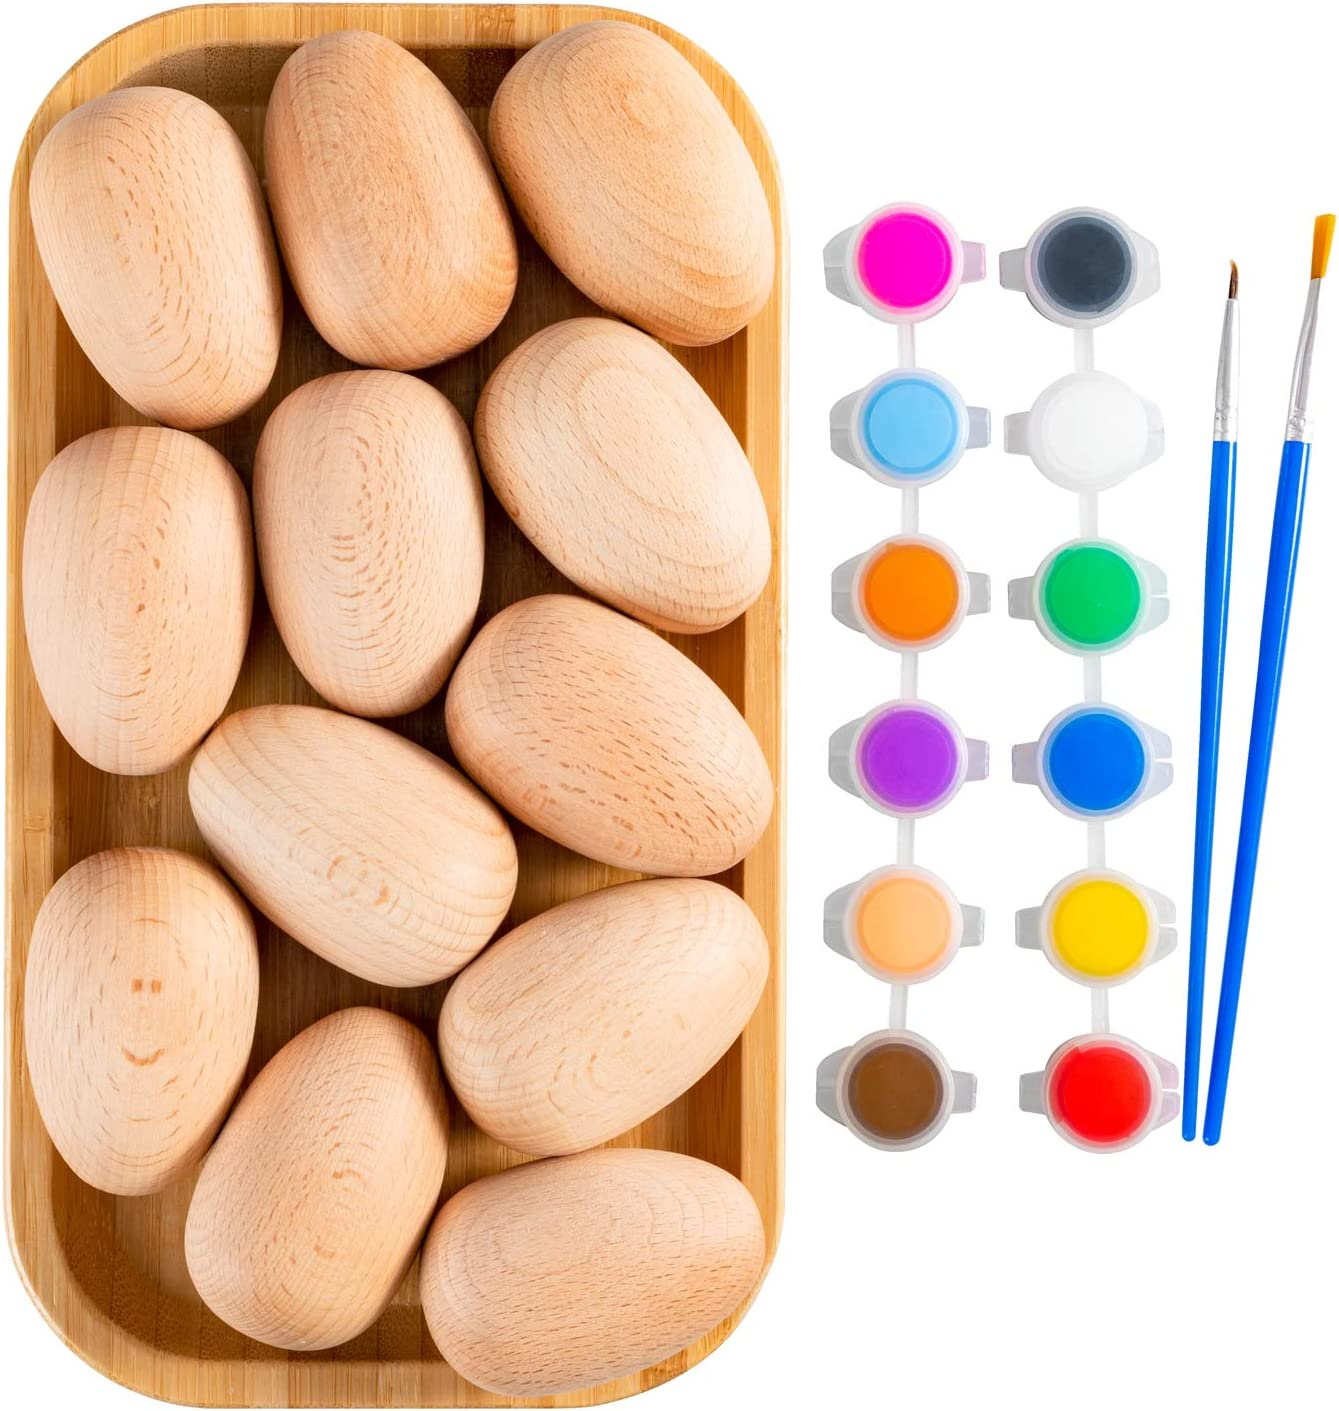 MerryHeart 12 Pcs Unpainted Wooden Eggs with Pigment, DIY Easter Eggs Decoration, Natural Beech Wooden Eggs for Crafts, Wooden Fake Eggs for Kids to Paint, Kitchen Decor/Food Toys